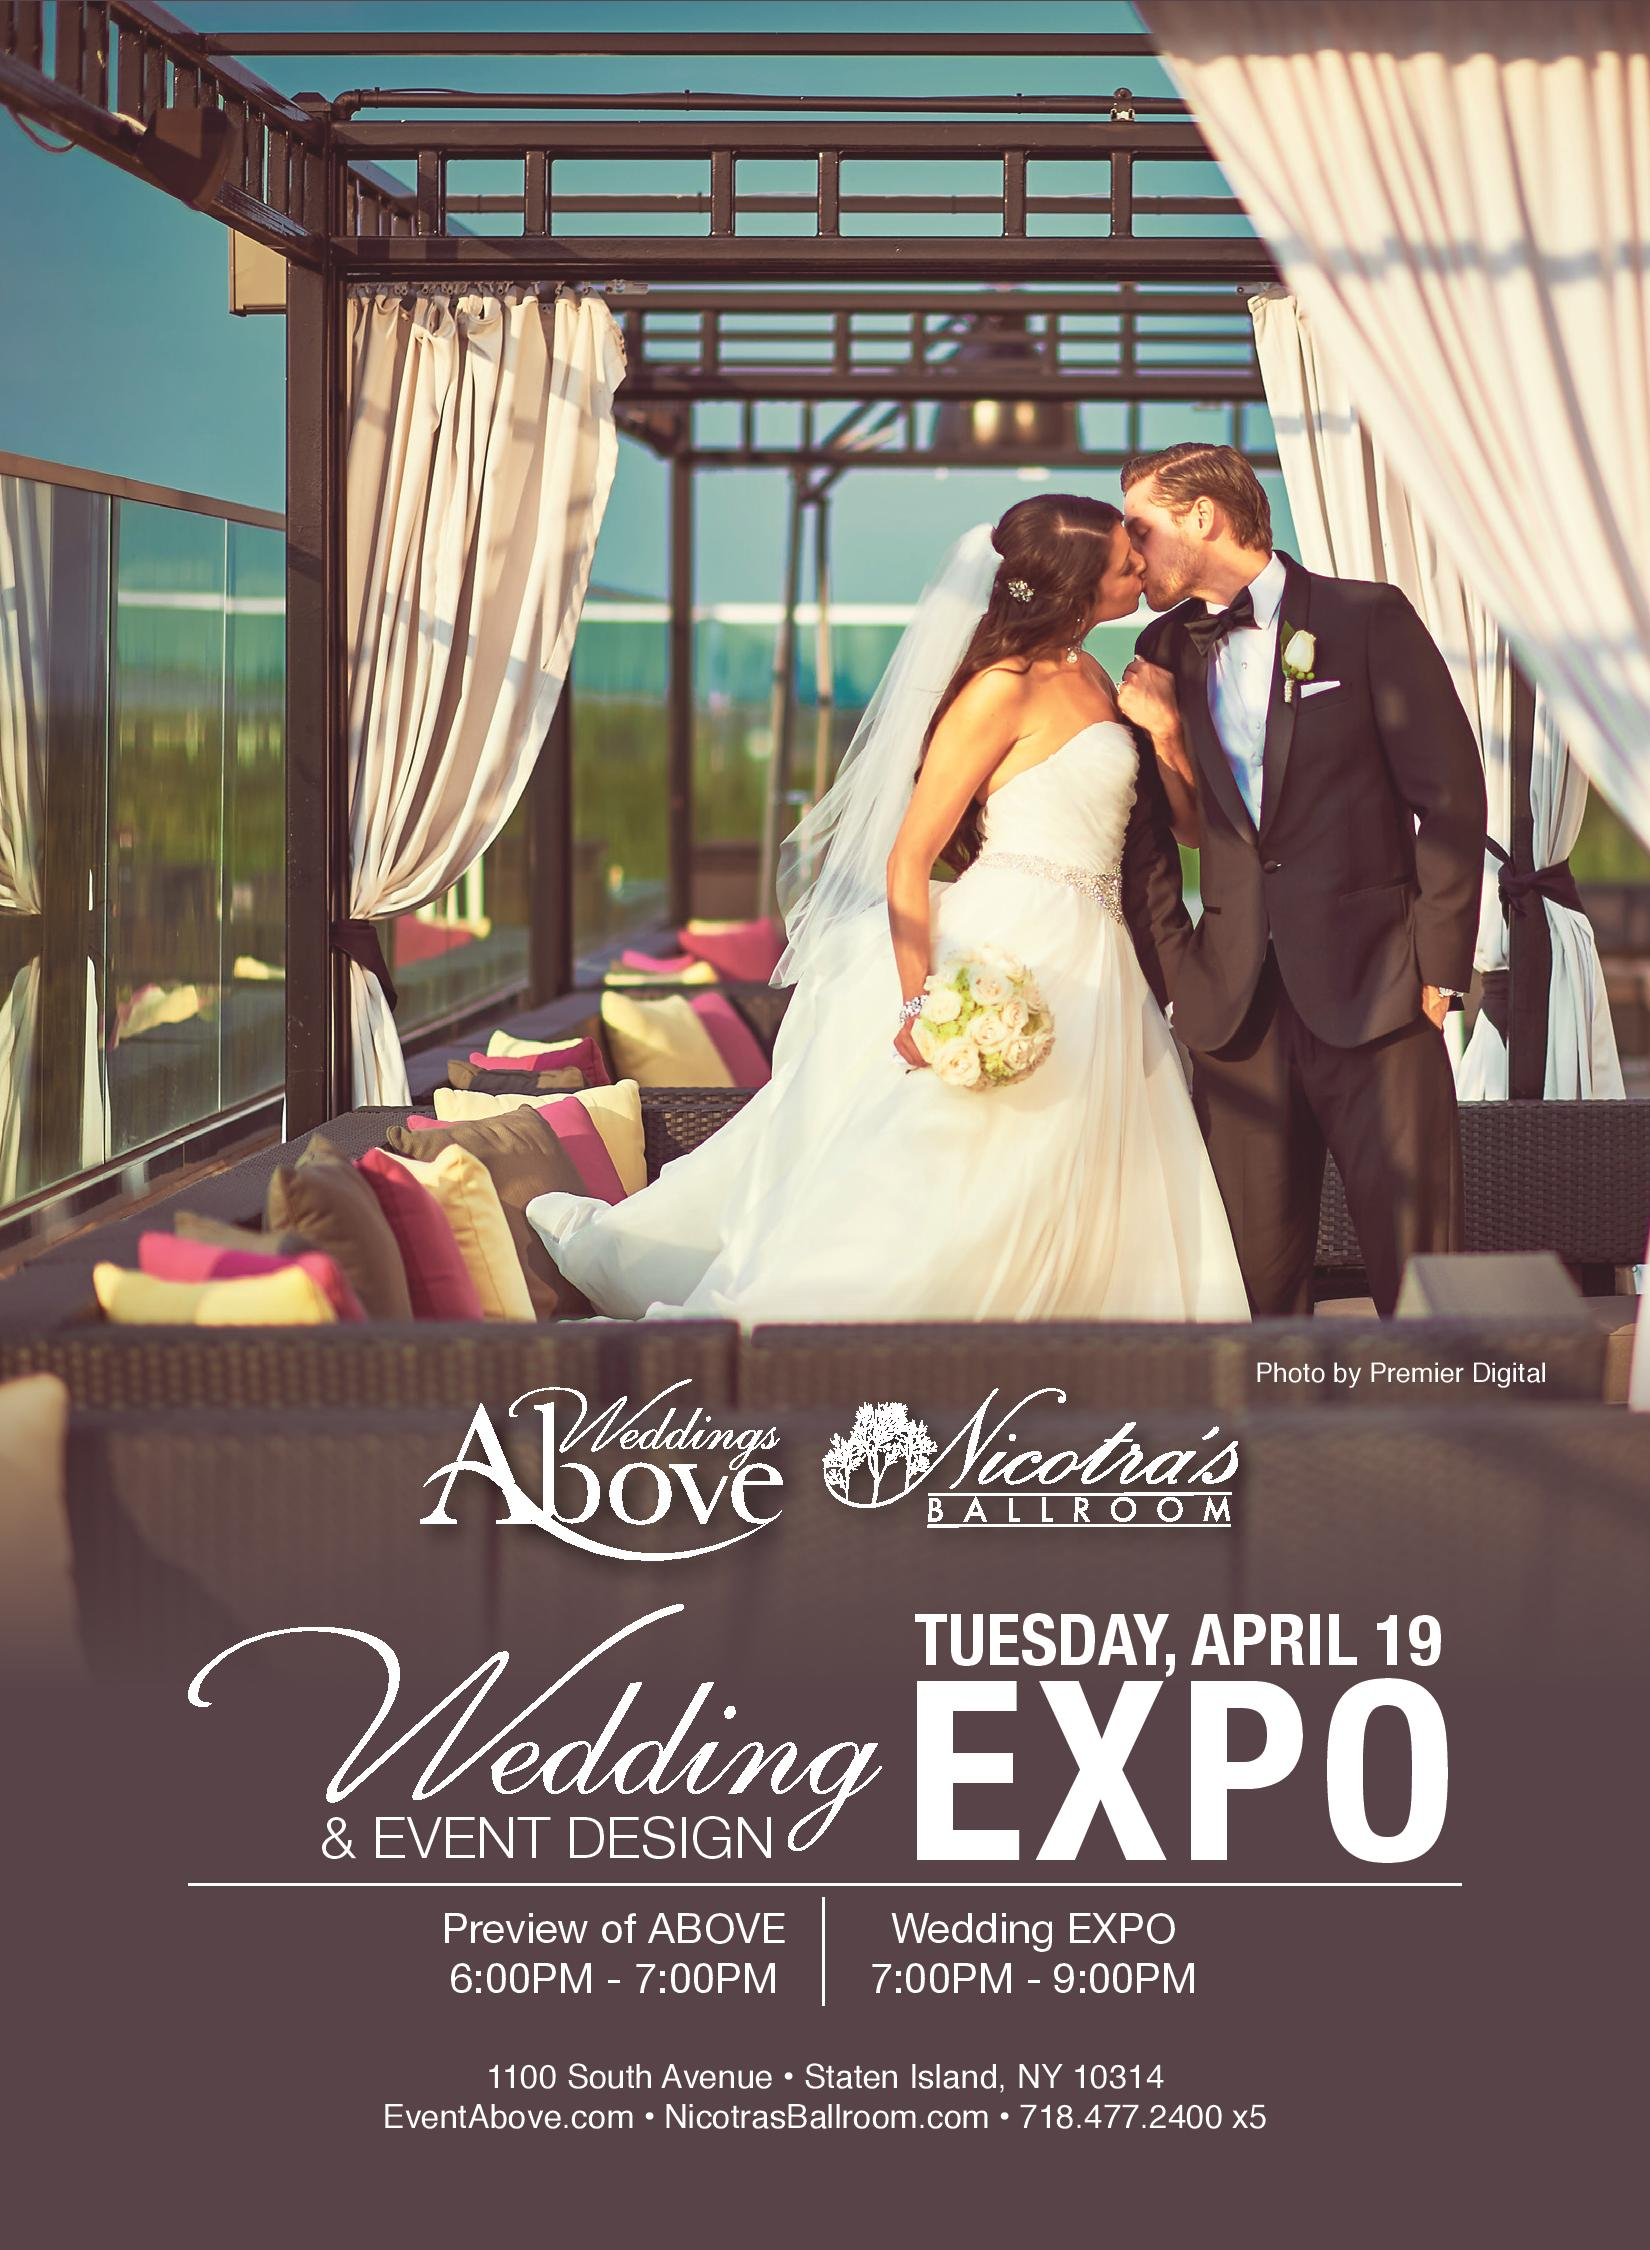 Wedding and event design expo April 19th